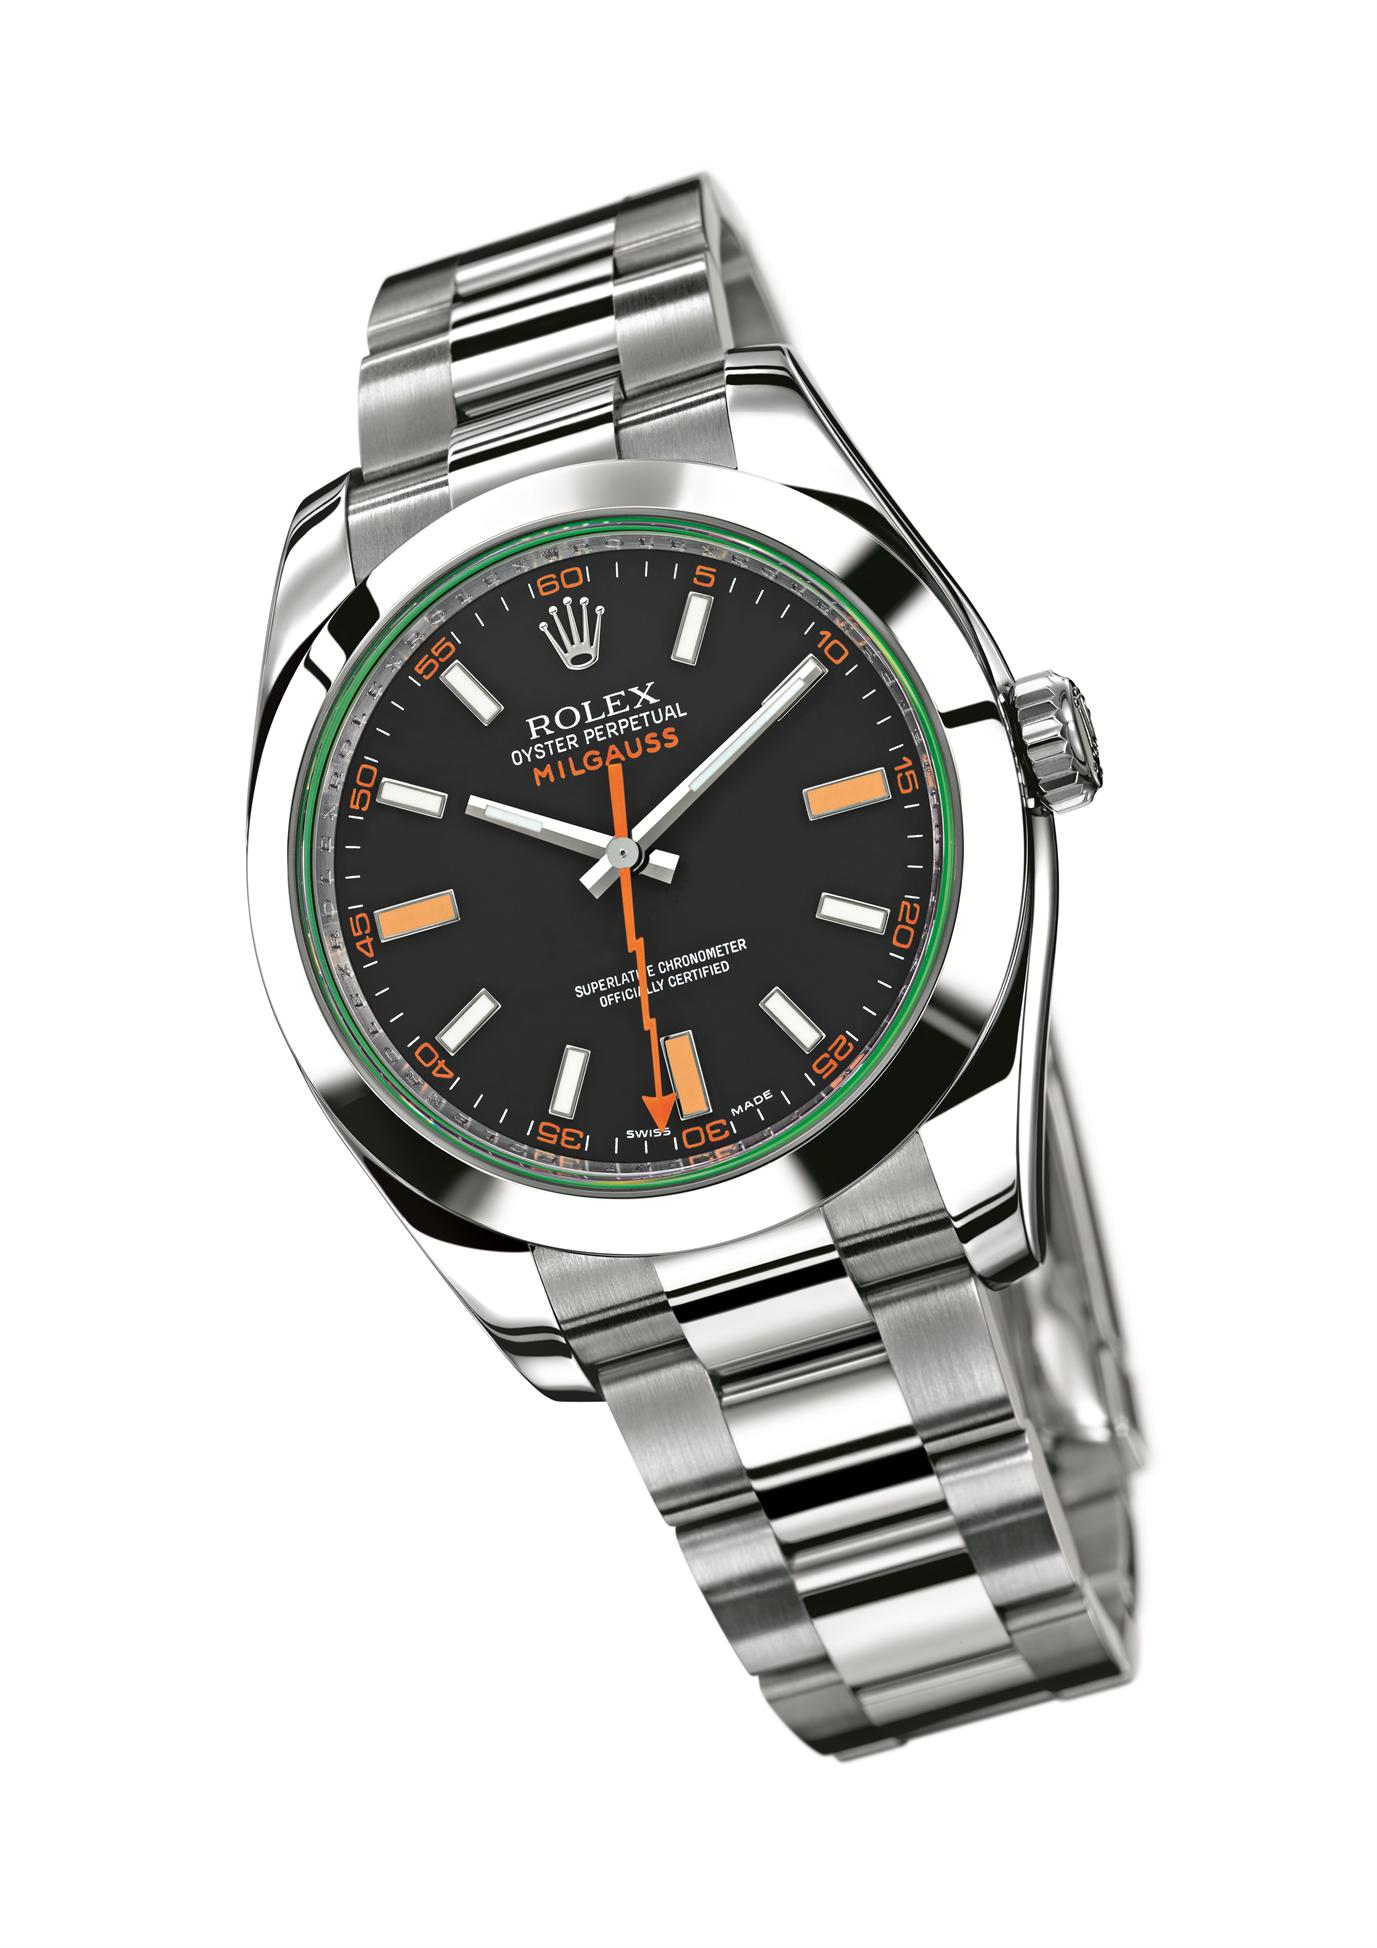 Rolex Milgauss of stainless steel strap replica